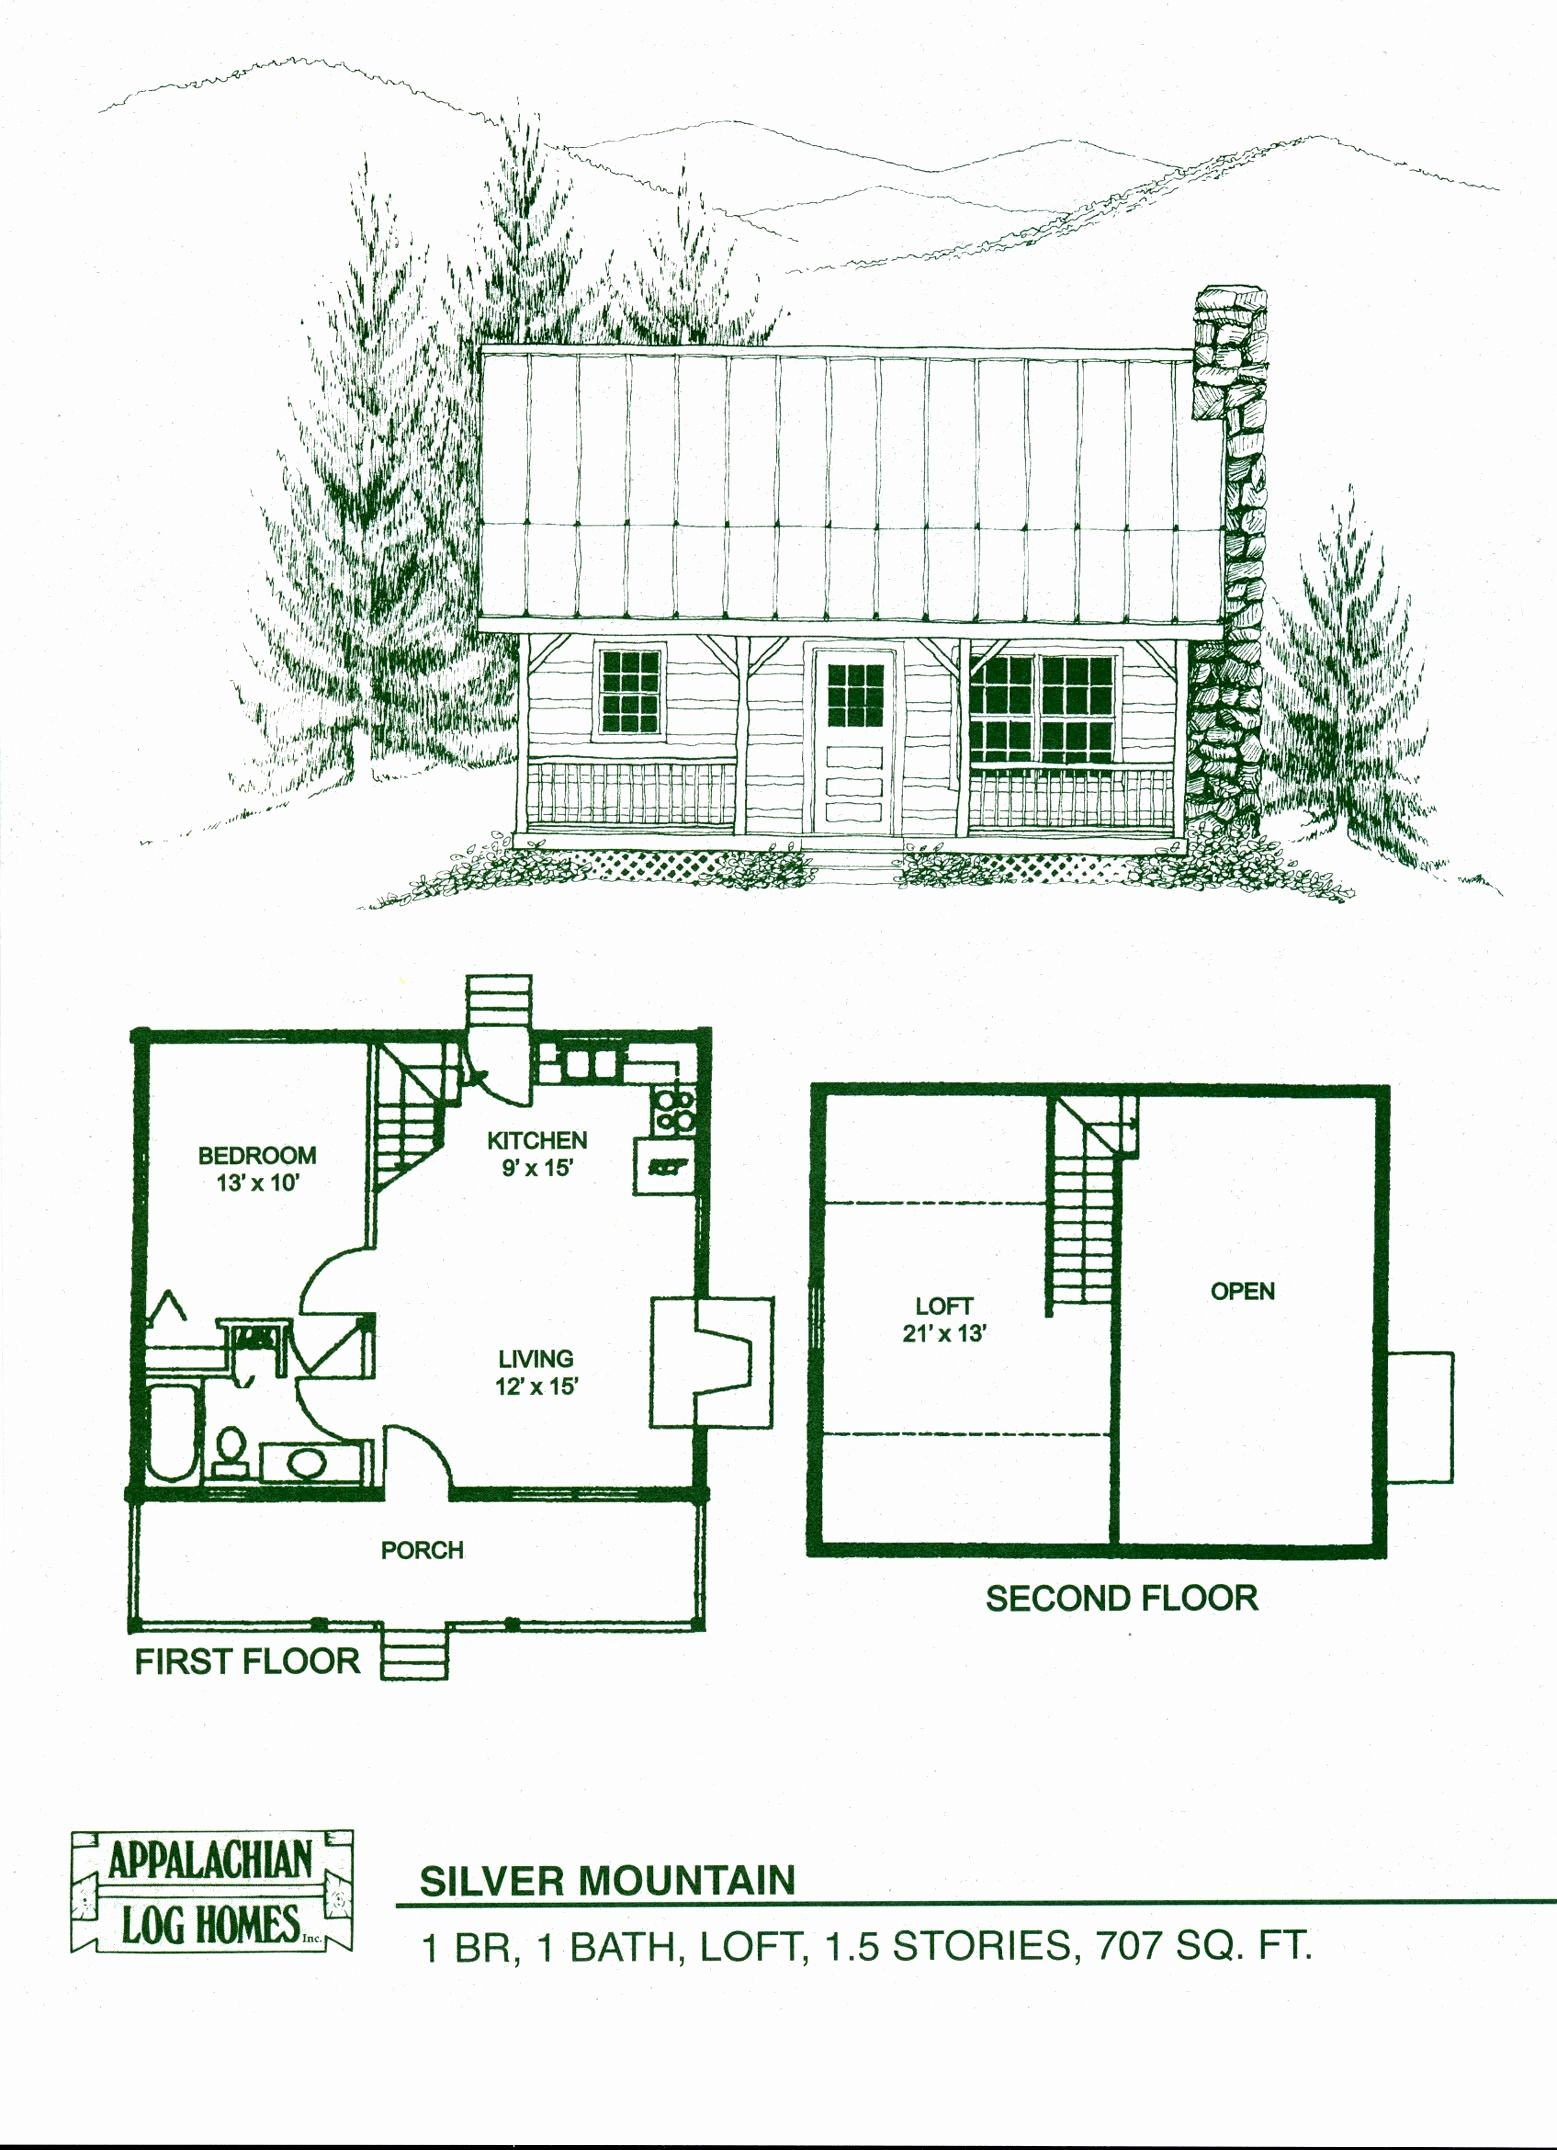 Floor Plan Guest House Floor Plans 500 Sq Ft Beautiful Small House Plans Under Small Cabin Plans House Plan With Loft Log Cabin Floor Plans